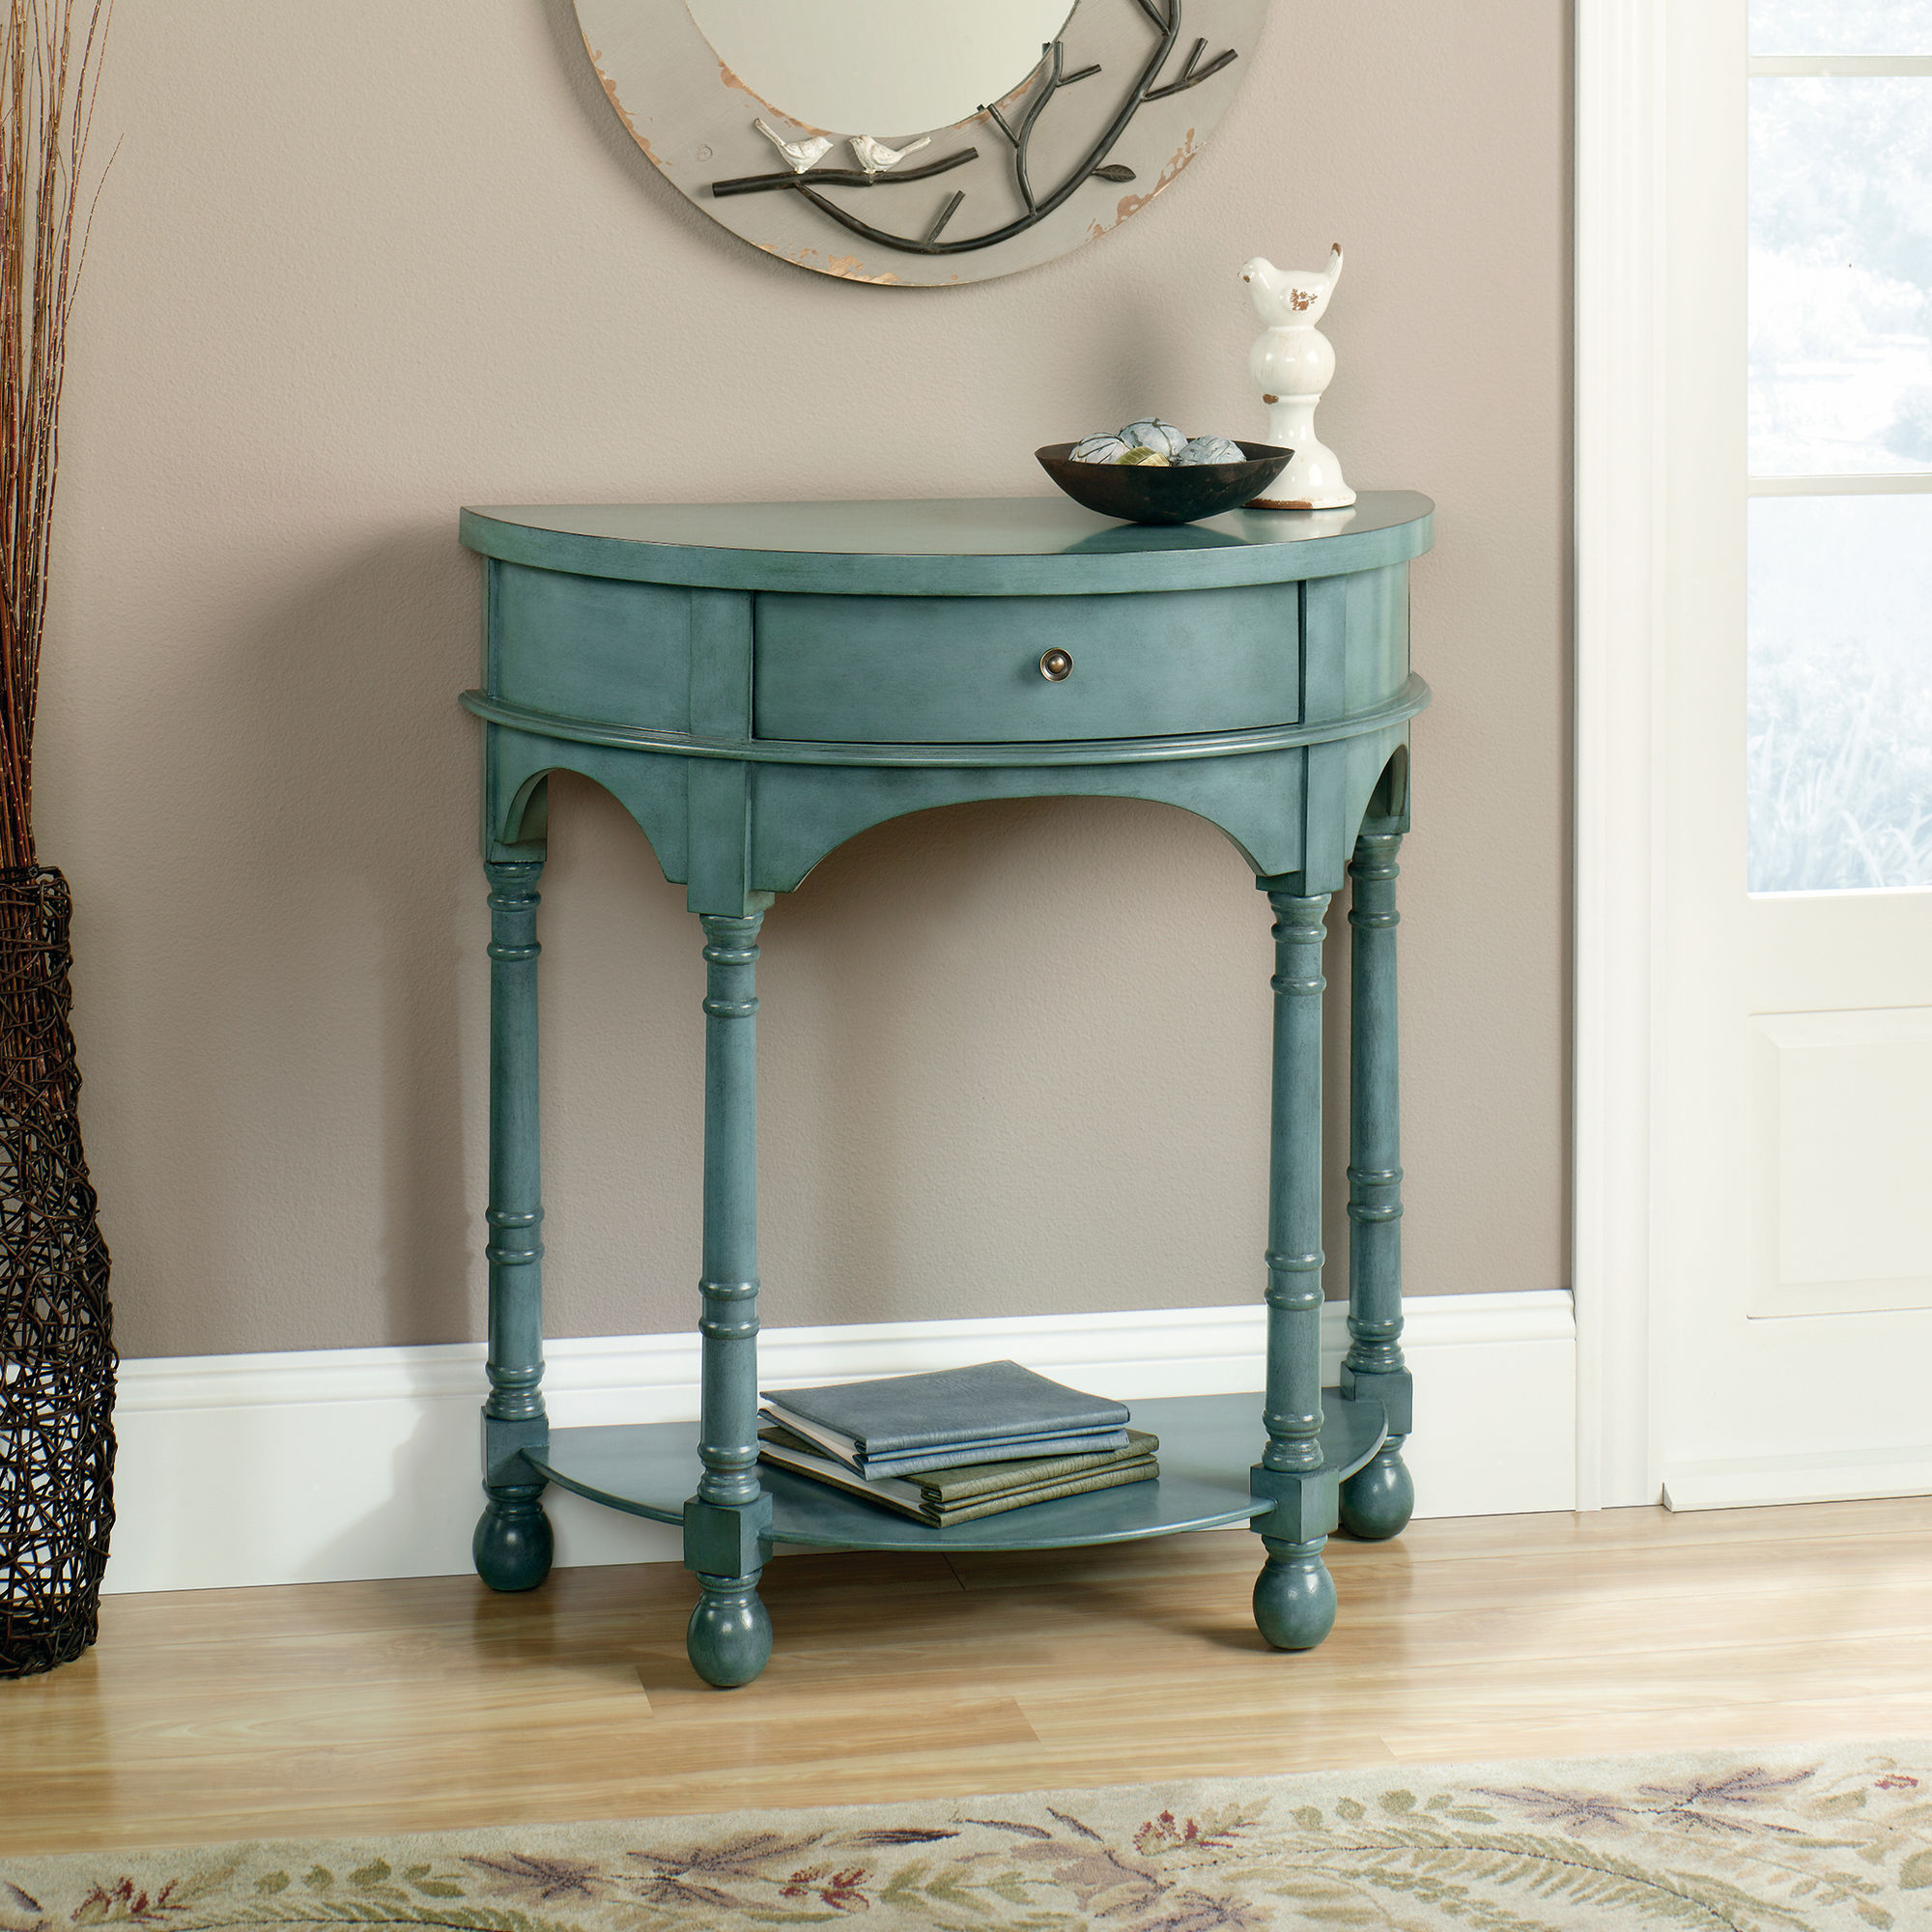 solid wood demilune accent table antique teal mathis brothers sgs wooden acrylic coffee tray tall skinny lamps nite stands extra long narrow console toddler chair target wall file